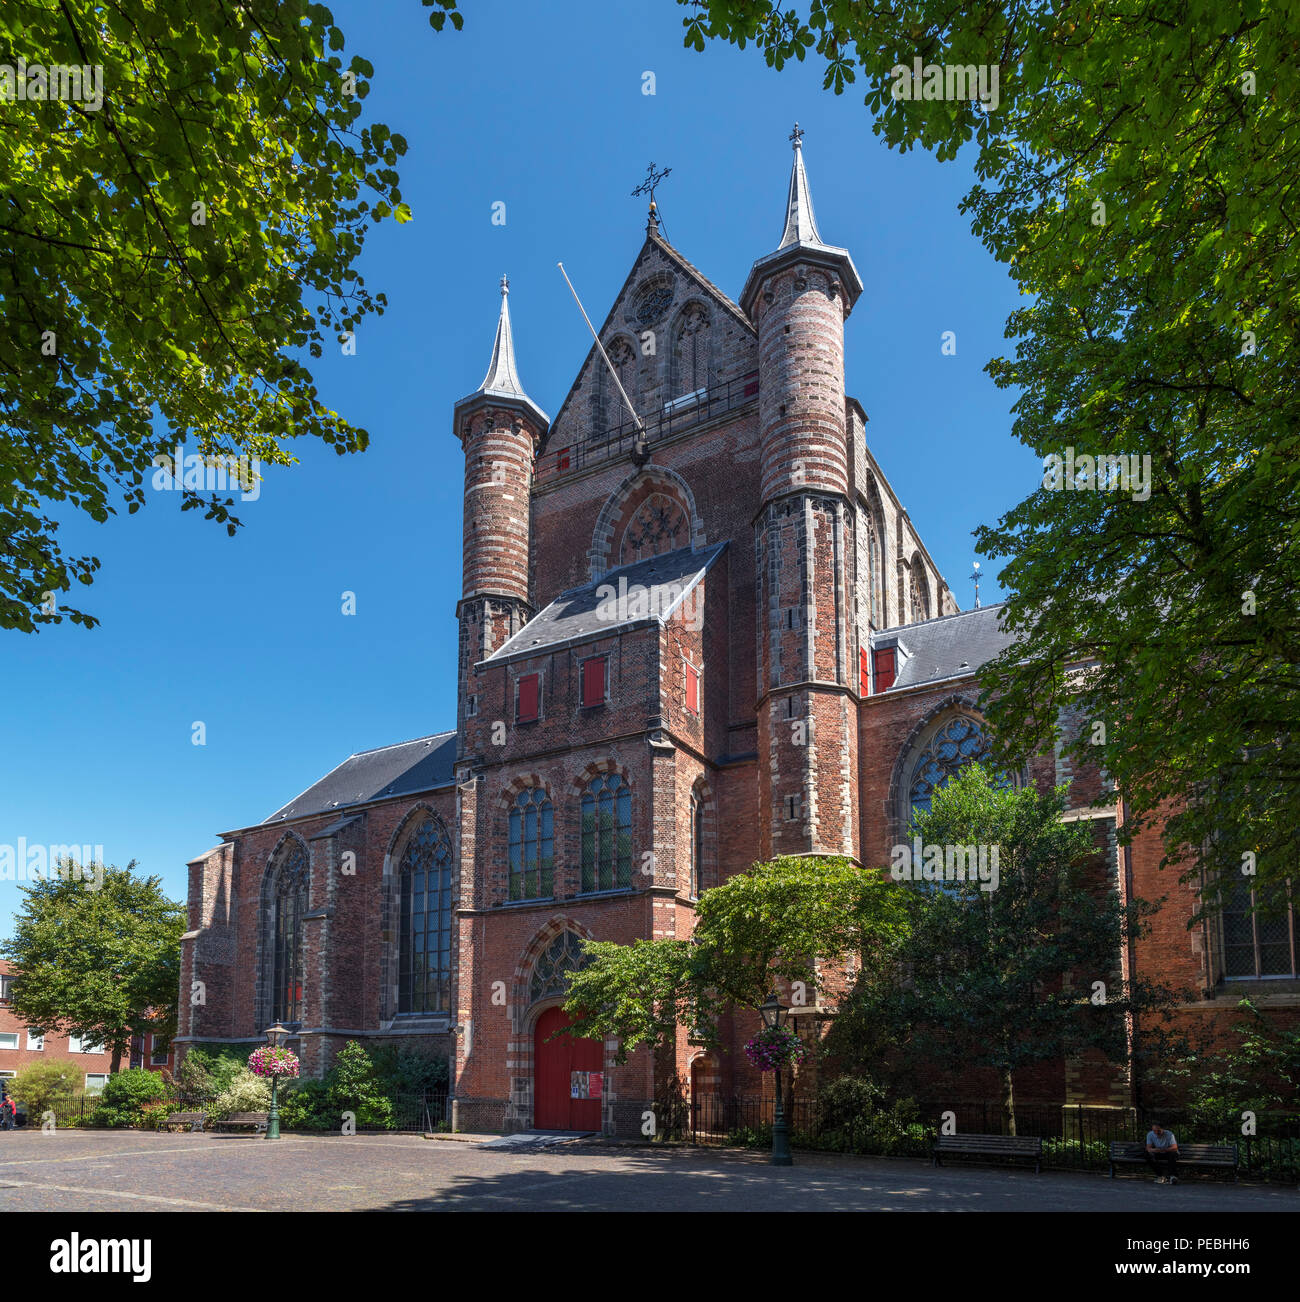 Pieterskerk, Leiden, Zuid-Holland (South Holland), Netherlands - Stock Image